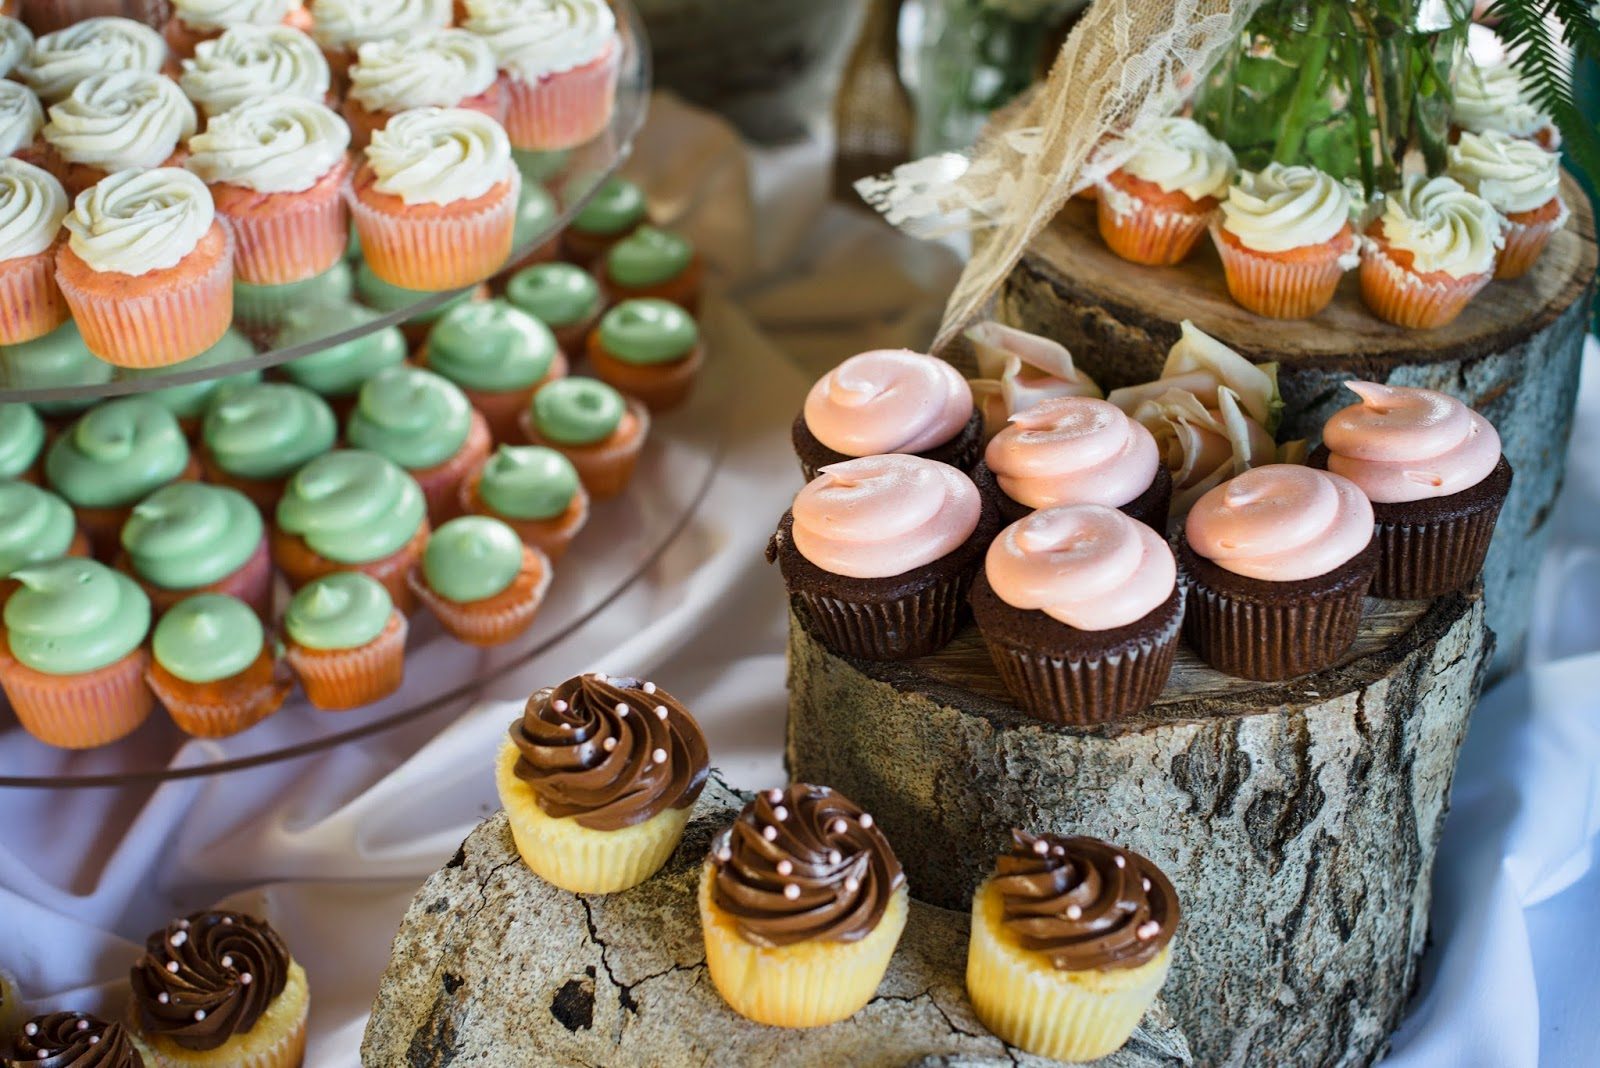 We cut logs to create this cupcake display